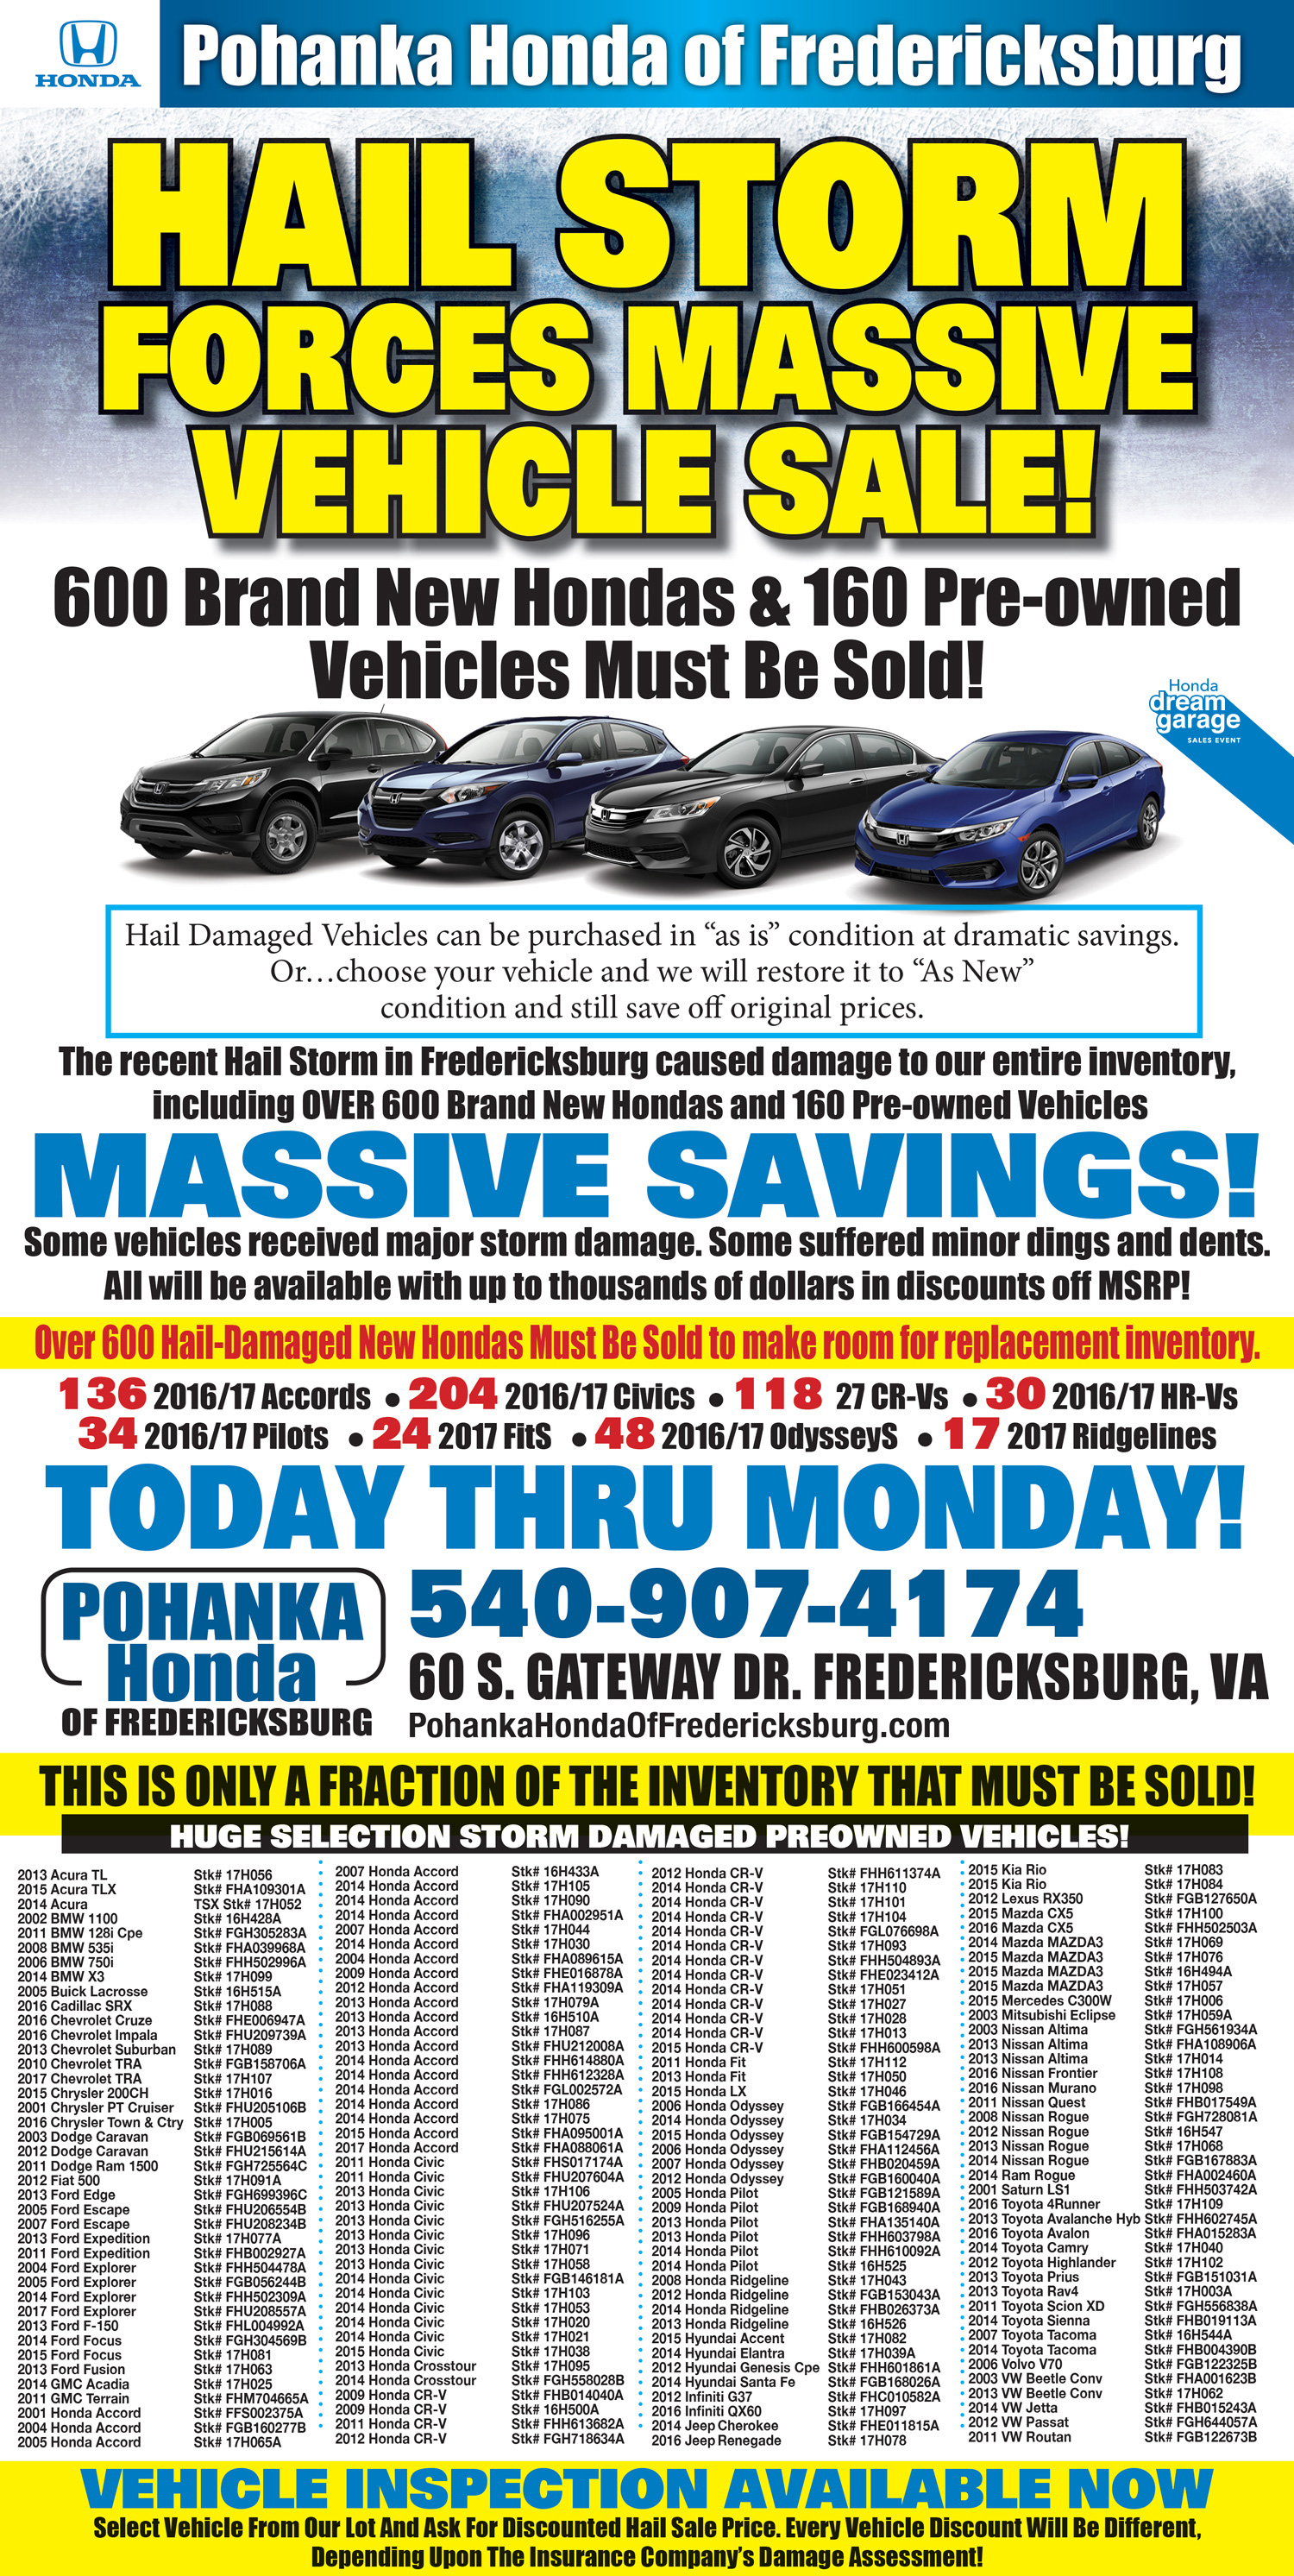 each more fredericksburg vehicles honda determined some hailsale by amount of pohanka than hail damage prices sales others to be will received sale final storm individual